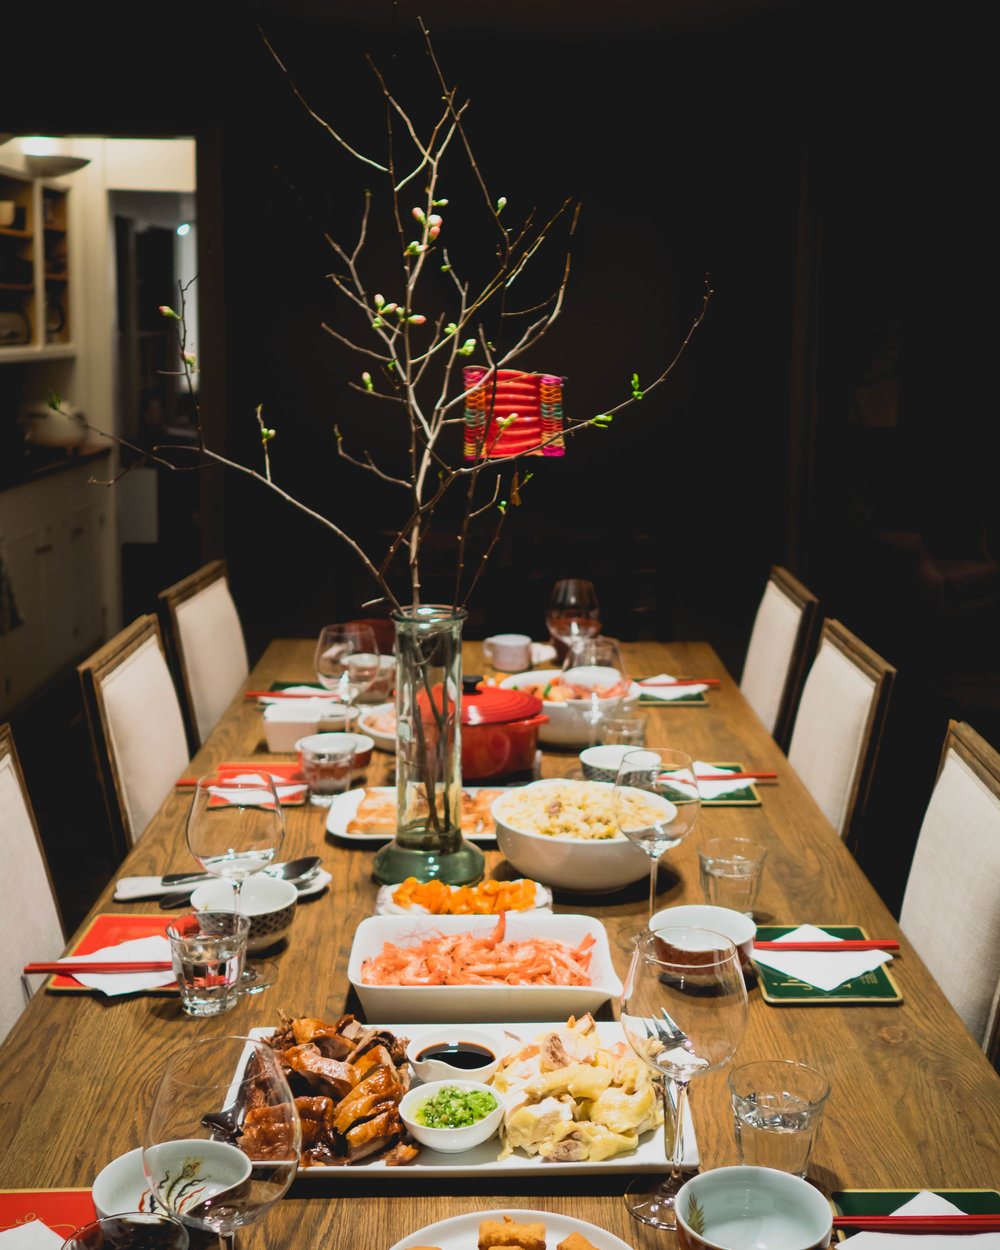 lunar new year's family feast.